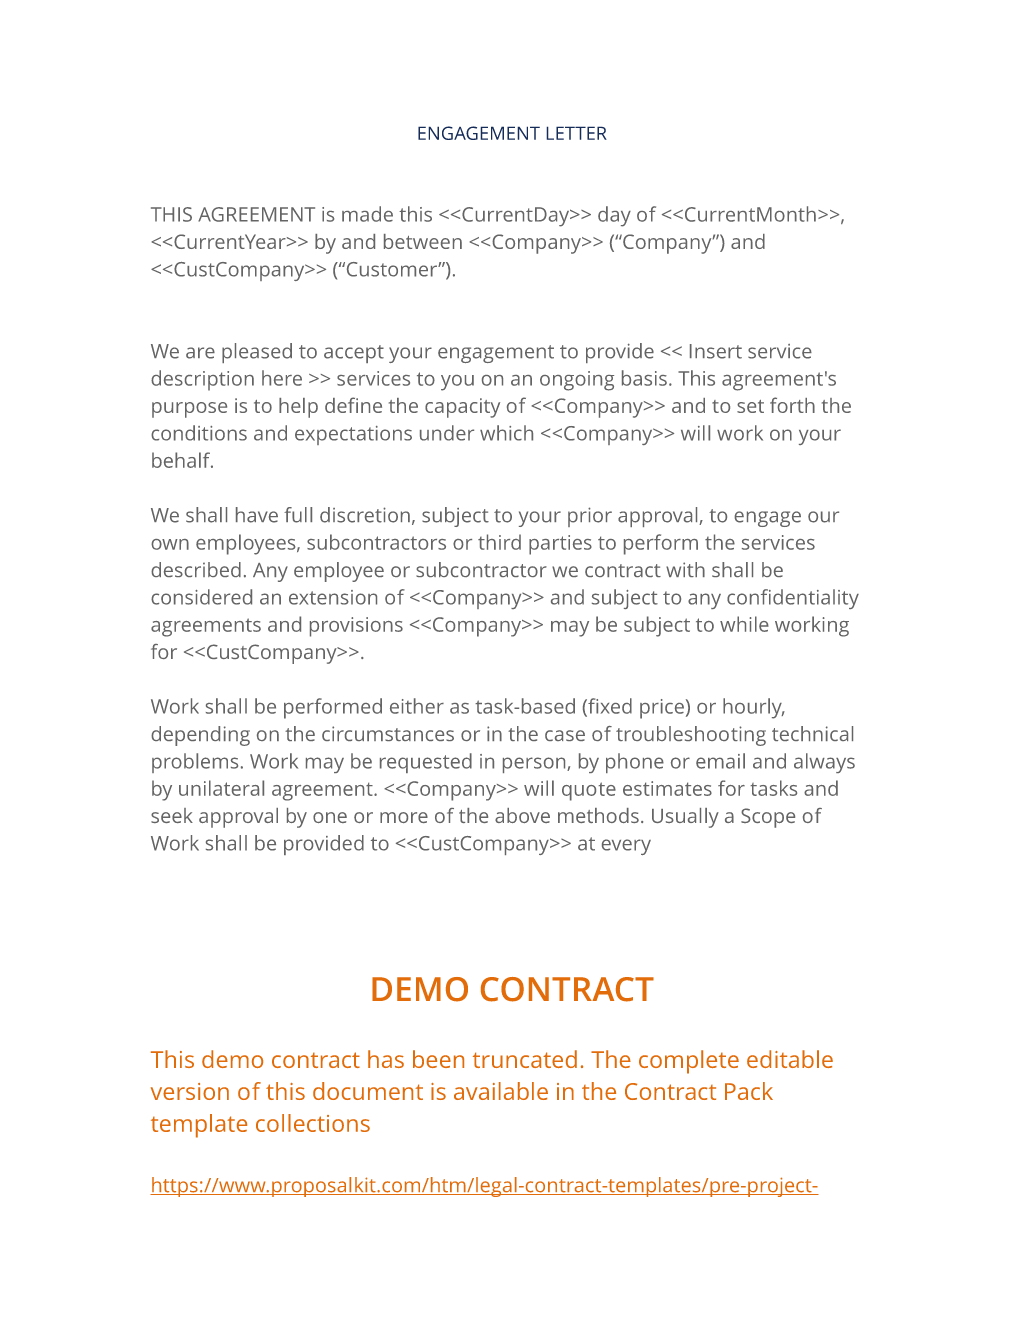 Engagement Letter - Legal contract for services template